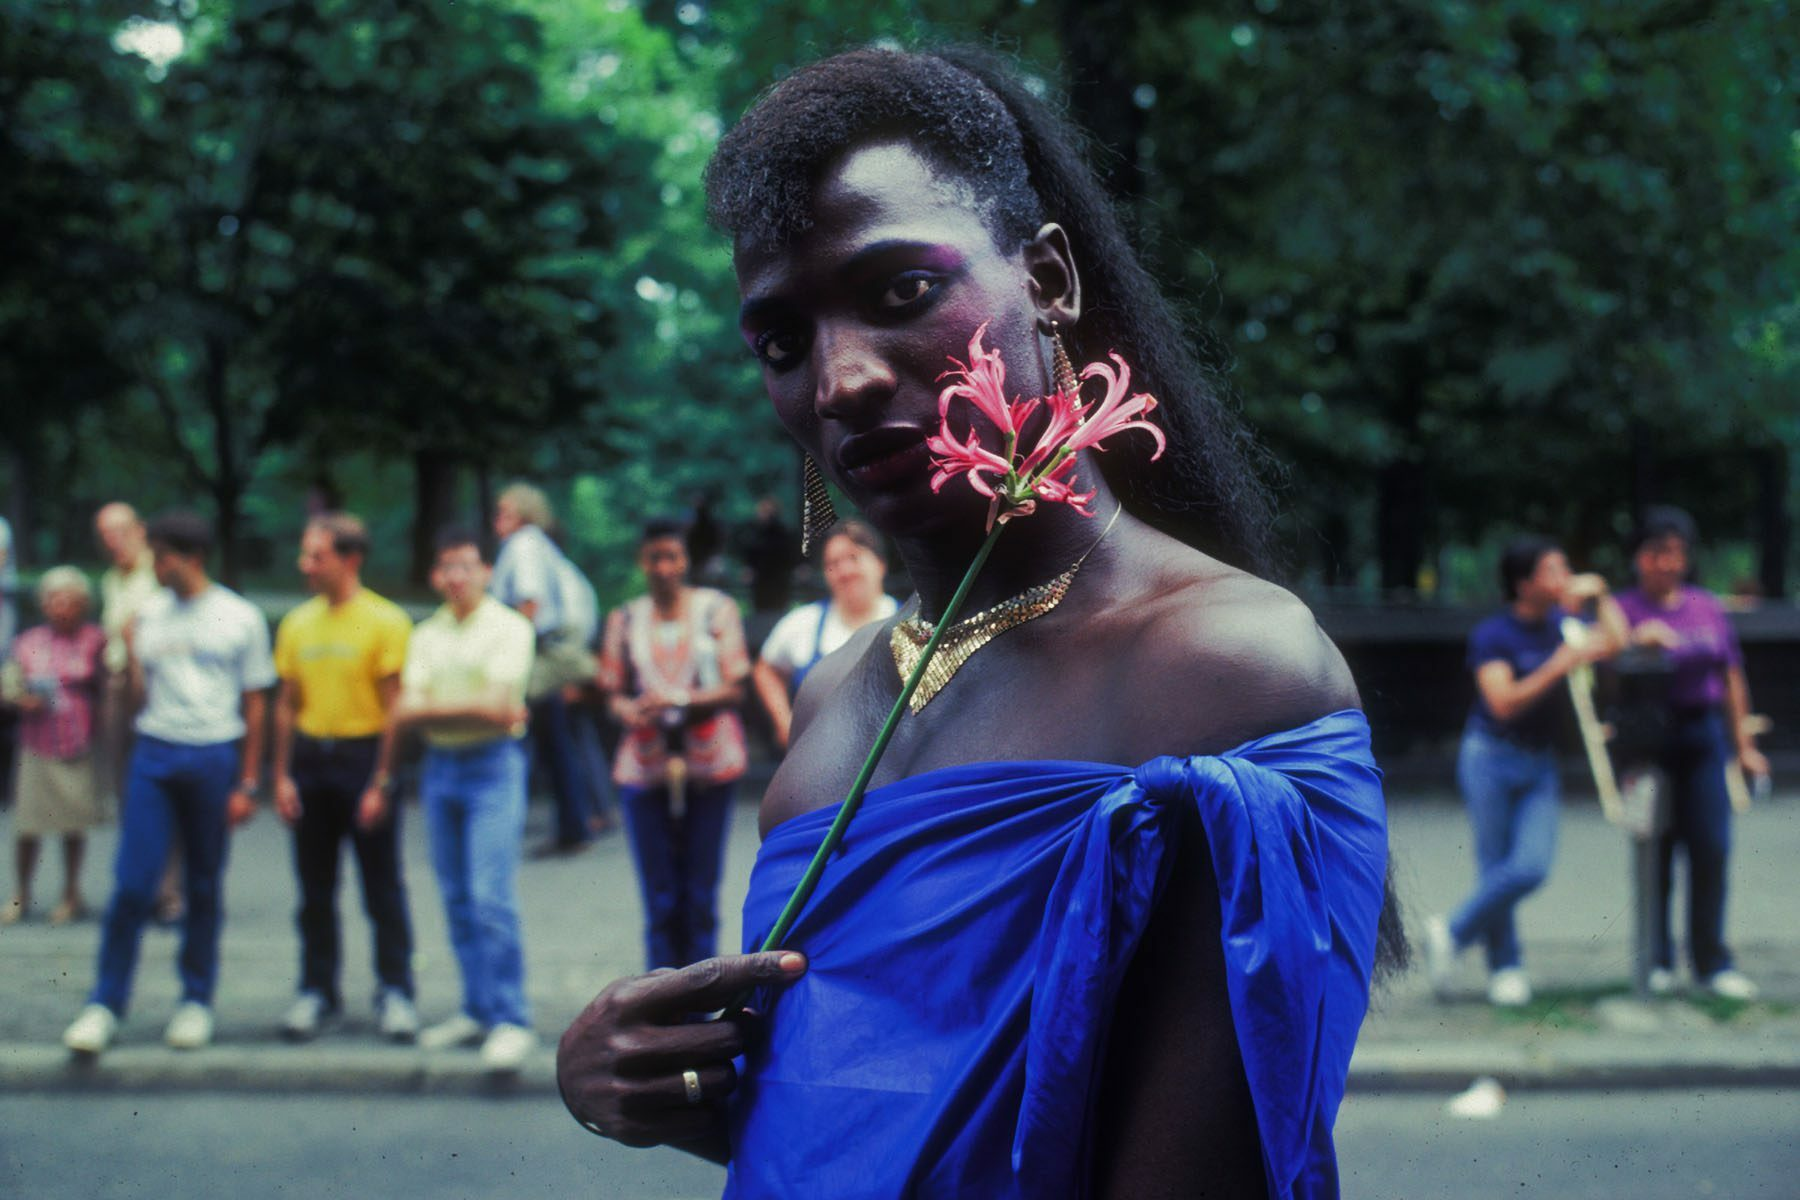 A participant wearing a golden necklace, earrings and a blue fabric as a top holds a flower to their cheek.